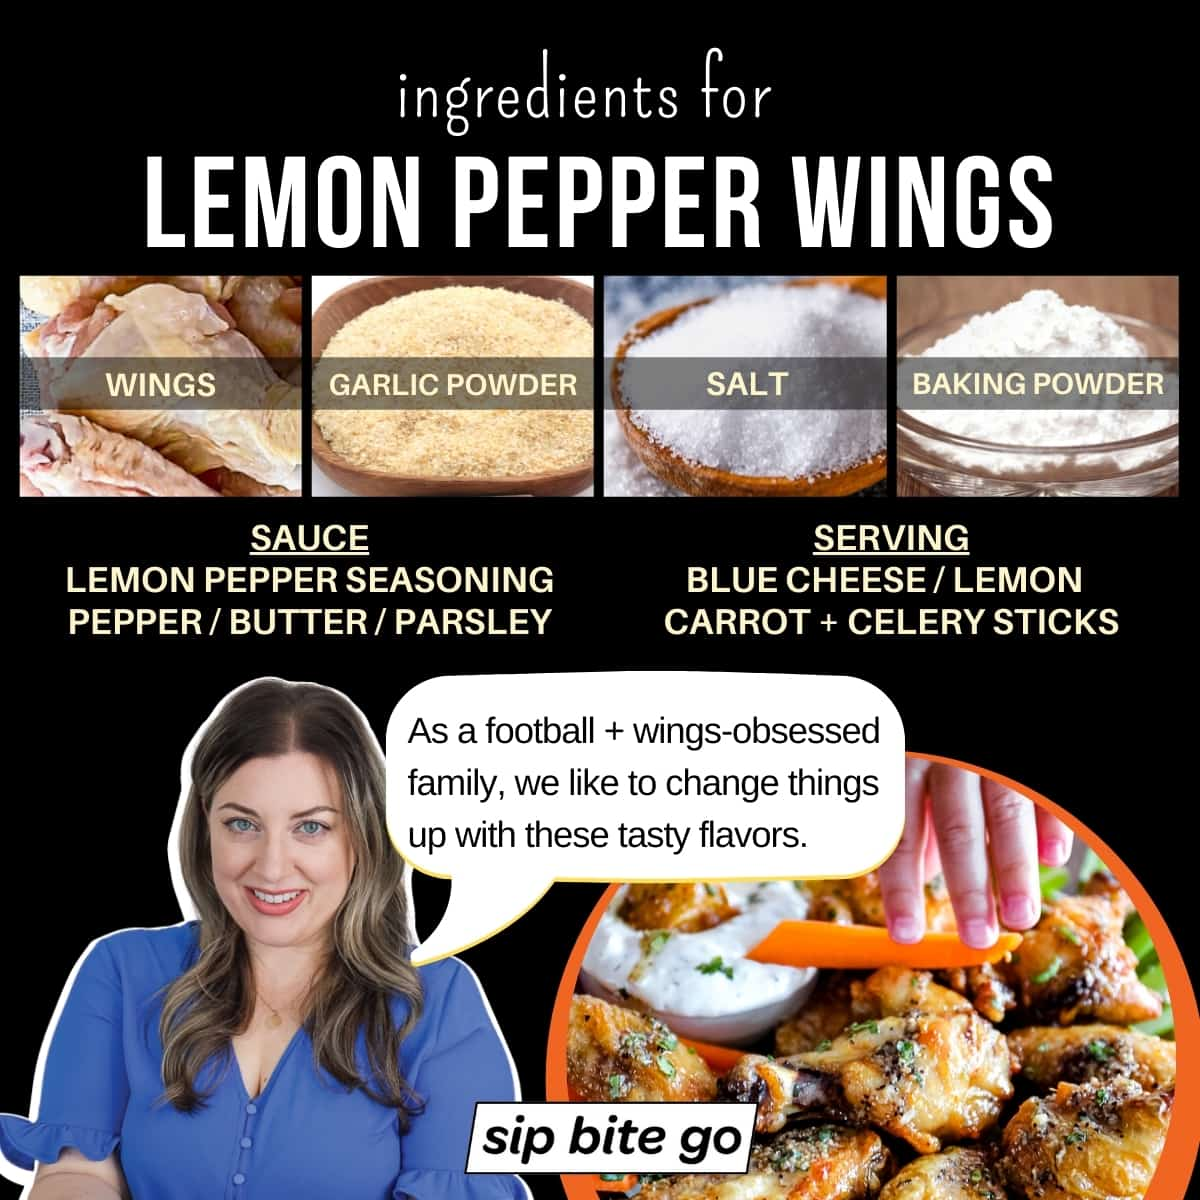 Infographic chart with ingredients for lemon pepper wings with captions and photos and quote.